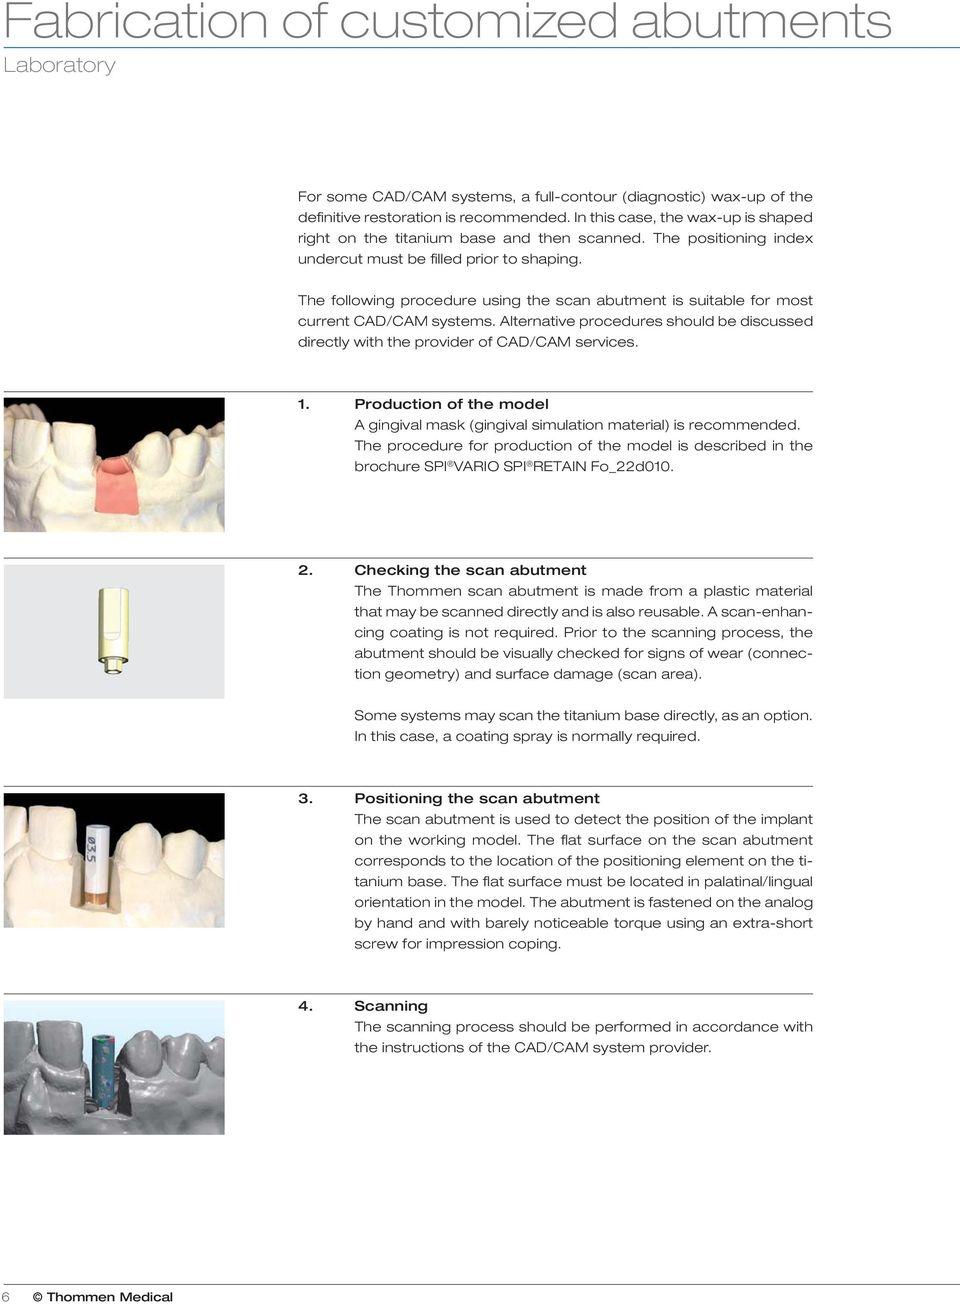 The following procedure using the scan abutment is suitable for most current CAD/CAM systems. Alternative procedures should be discussed directly with the provider of CAD/CAM services. 1.